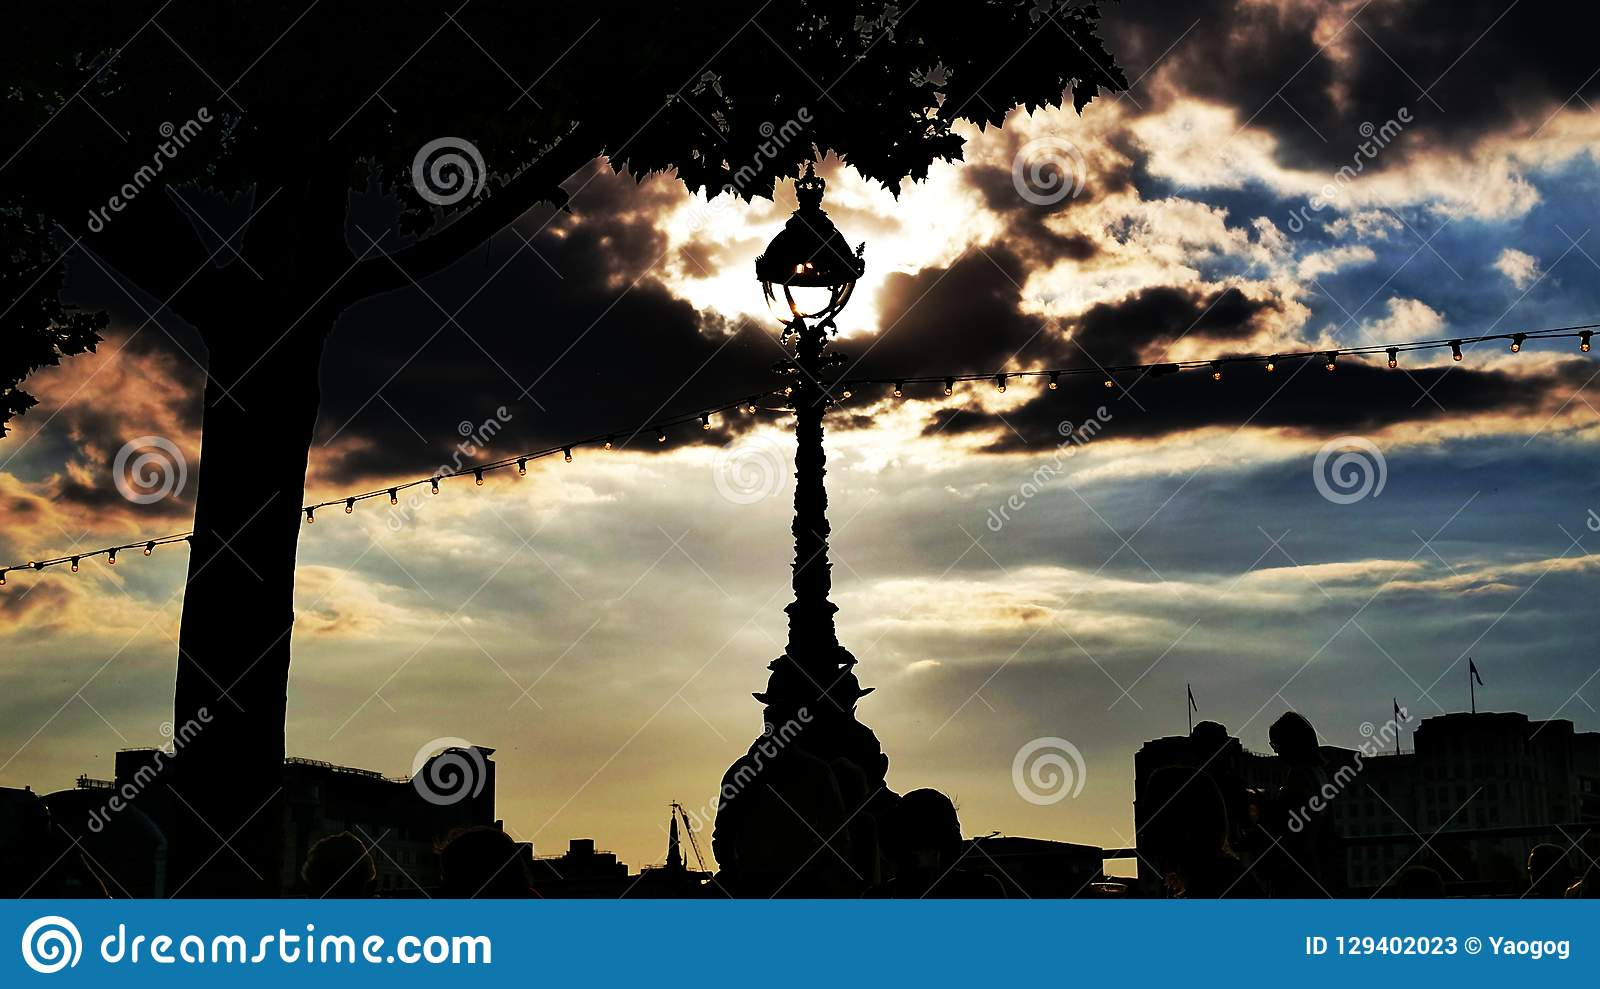 Sun in lamp post with clouds and silhouette. Dramatic blue colored sky picture with the sun in a lamppost, with tree, buildings and some clouds in silhouette stock photos